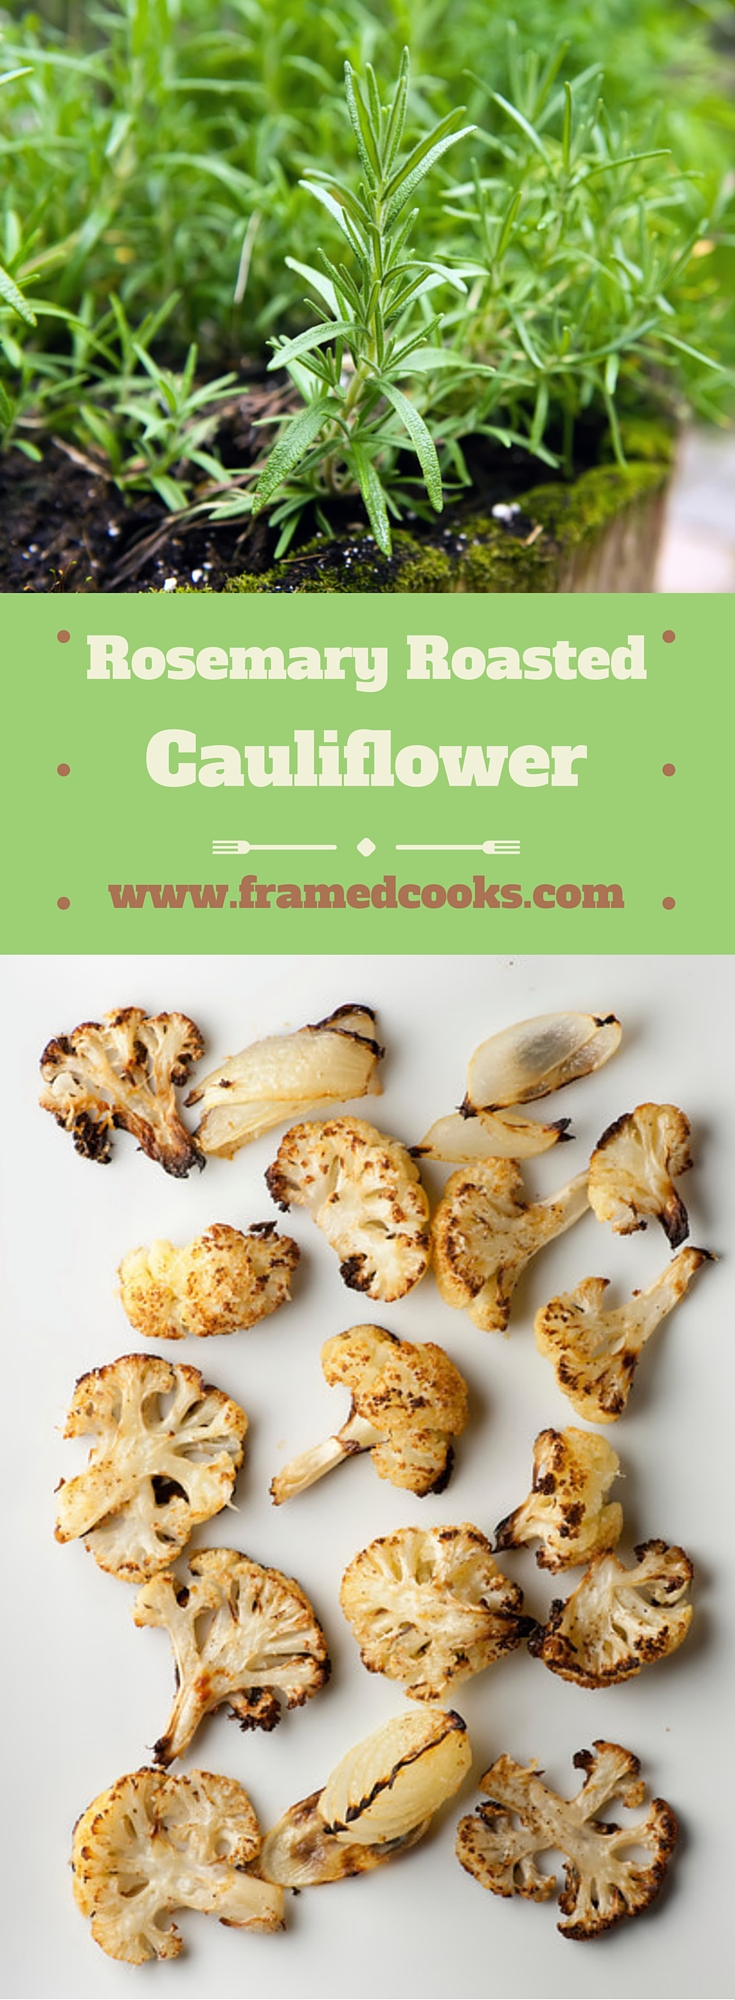 Roast up some cauliflower with some onion and fresh rosemary and you will gain a whole new love for one of my favorite veggies!